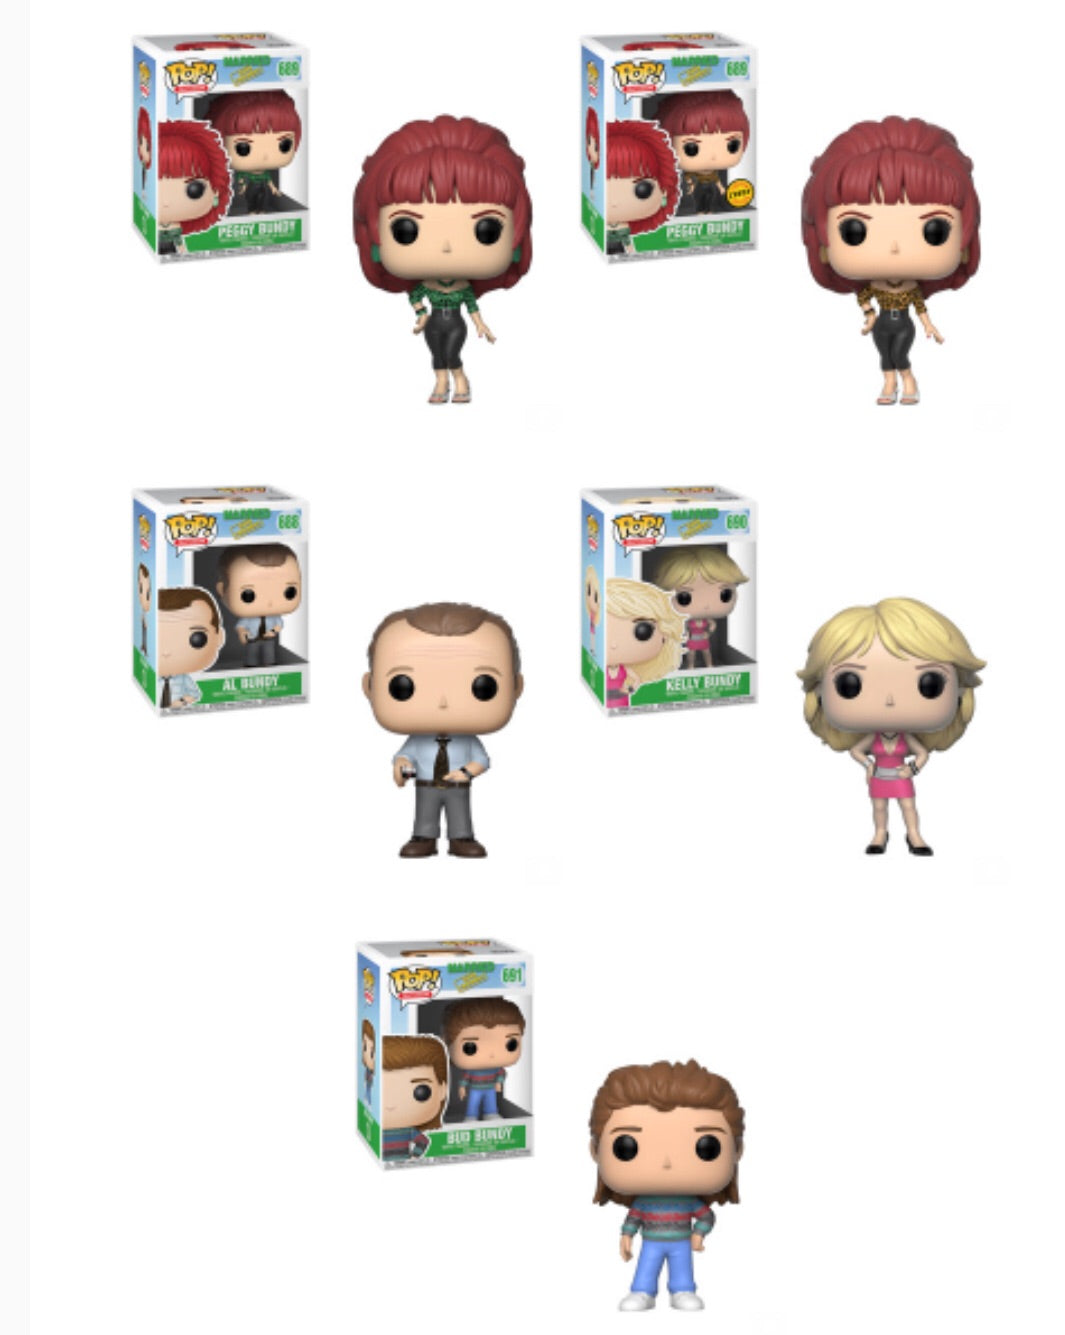 Married with Children Funko Pop! Complete Set of 5 CHASE Included